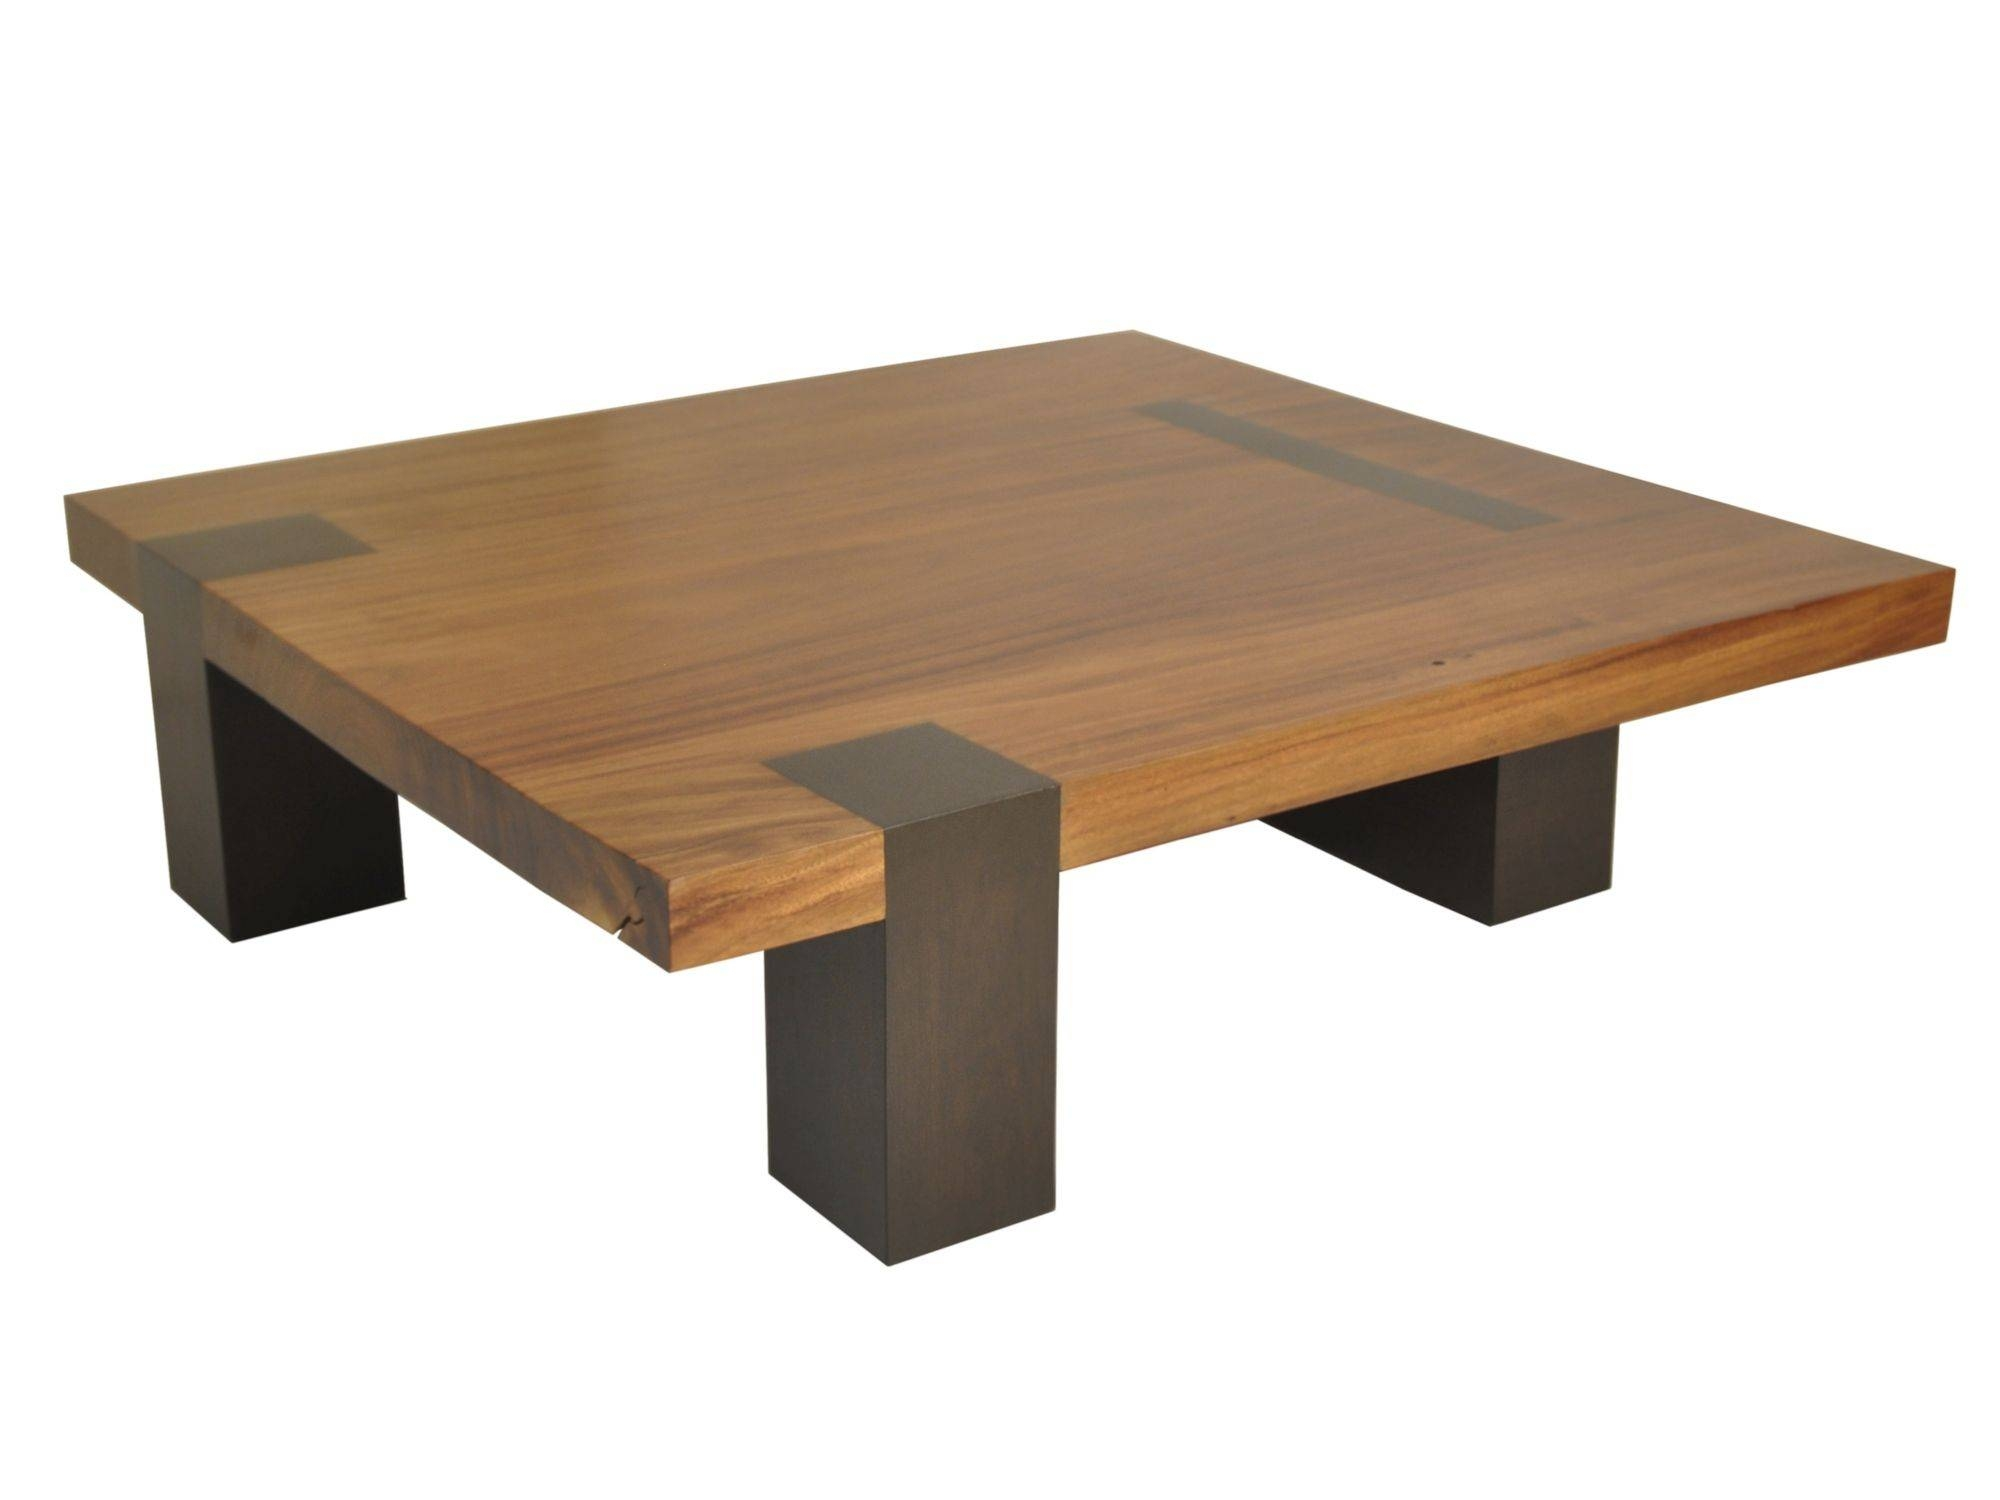 The Popularity Of The Square Wood Coffee Table Furniture Table Throughout Short Coffee Tables (View 14 of 15)